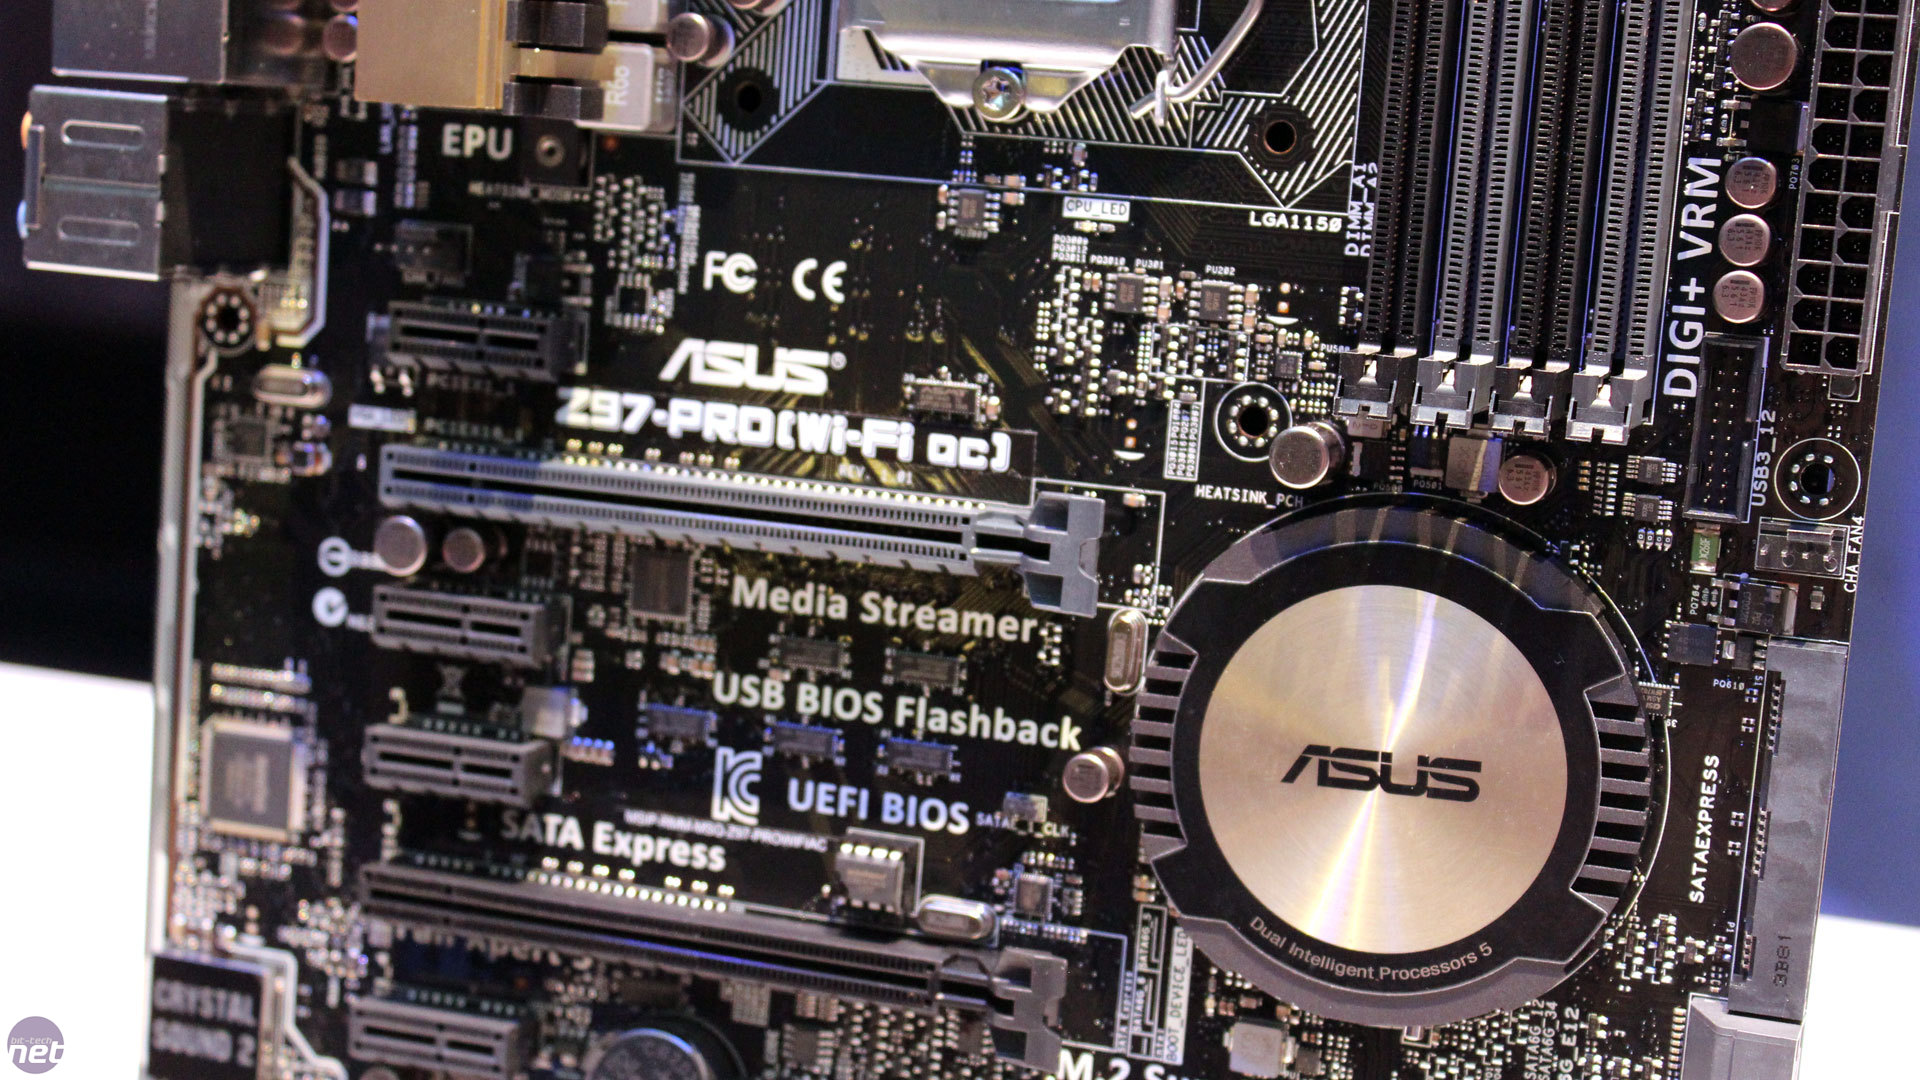 Asus+Motherboard ASUS Z97 Motherboards Preview (NDA TODAY 8am) ASUS ...